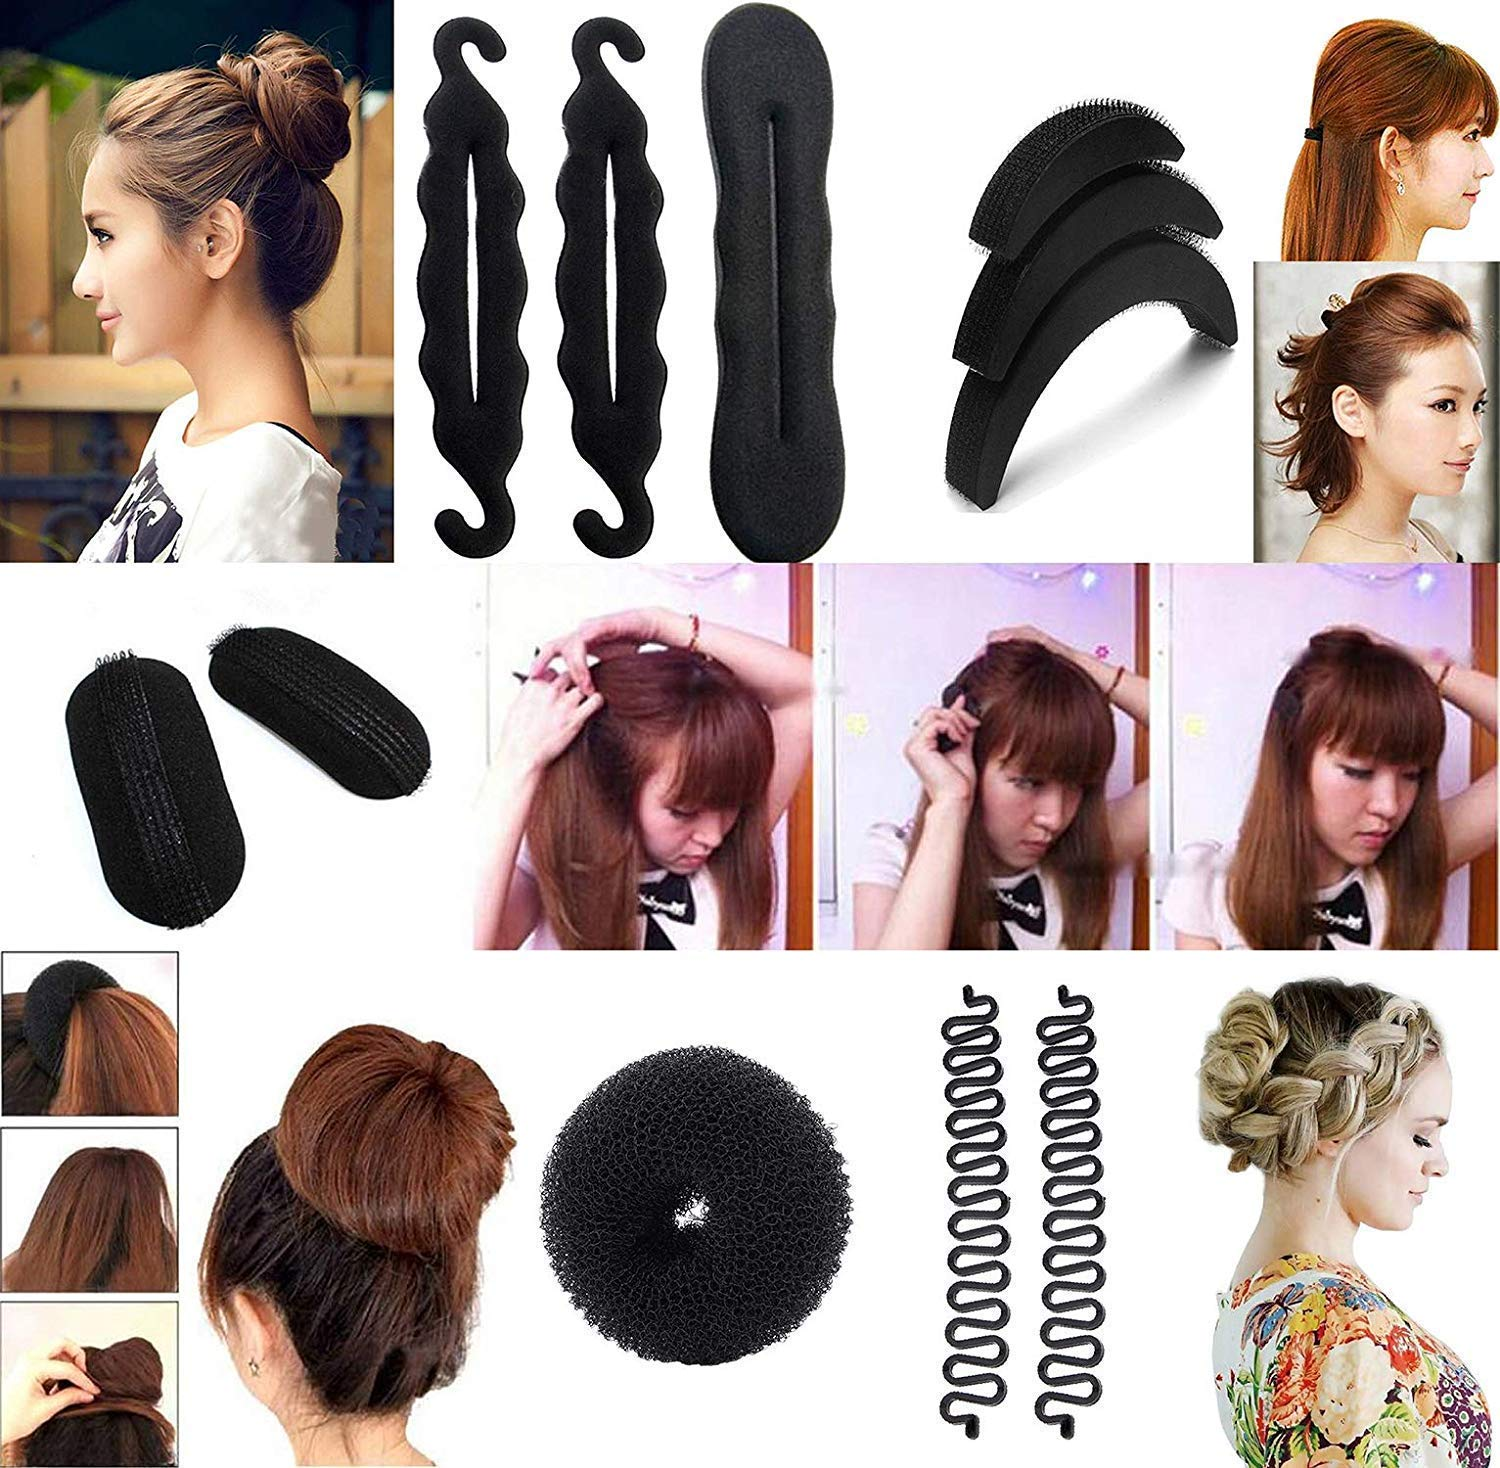 LEYSIN Hair Styles Accessories Tool for Women -Combo Pack of 11 Pieces product image